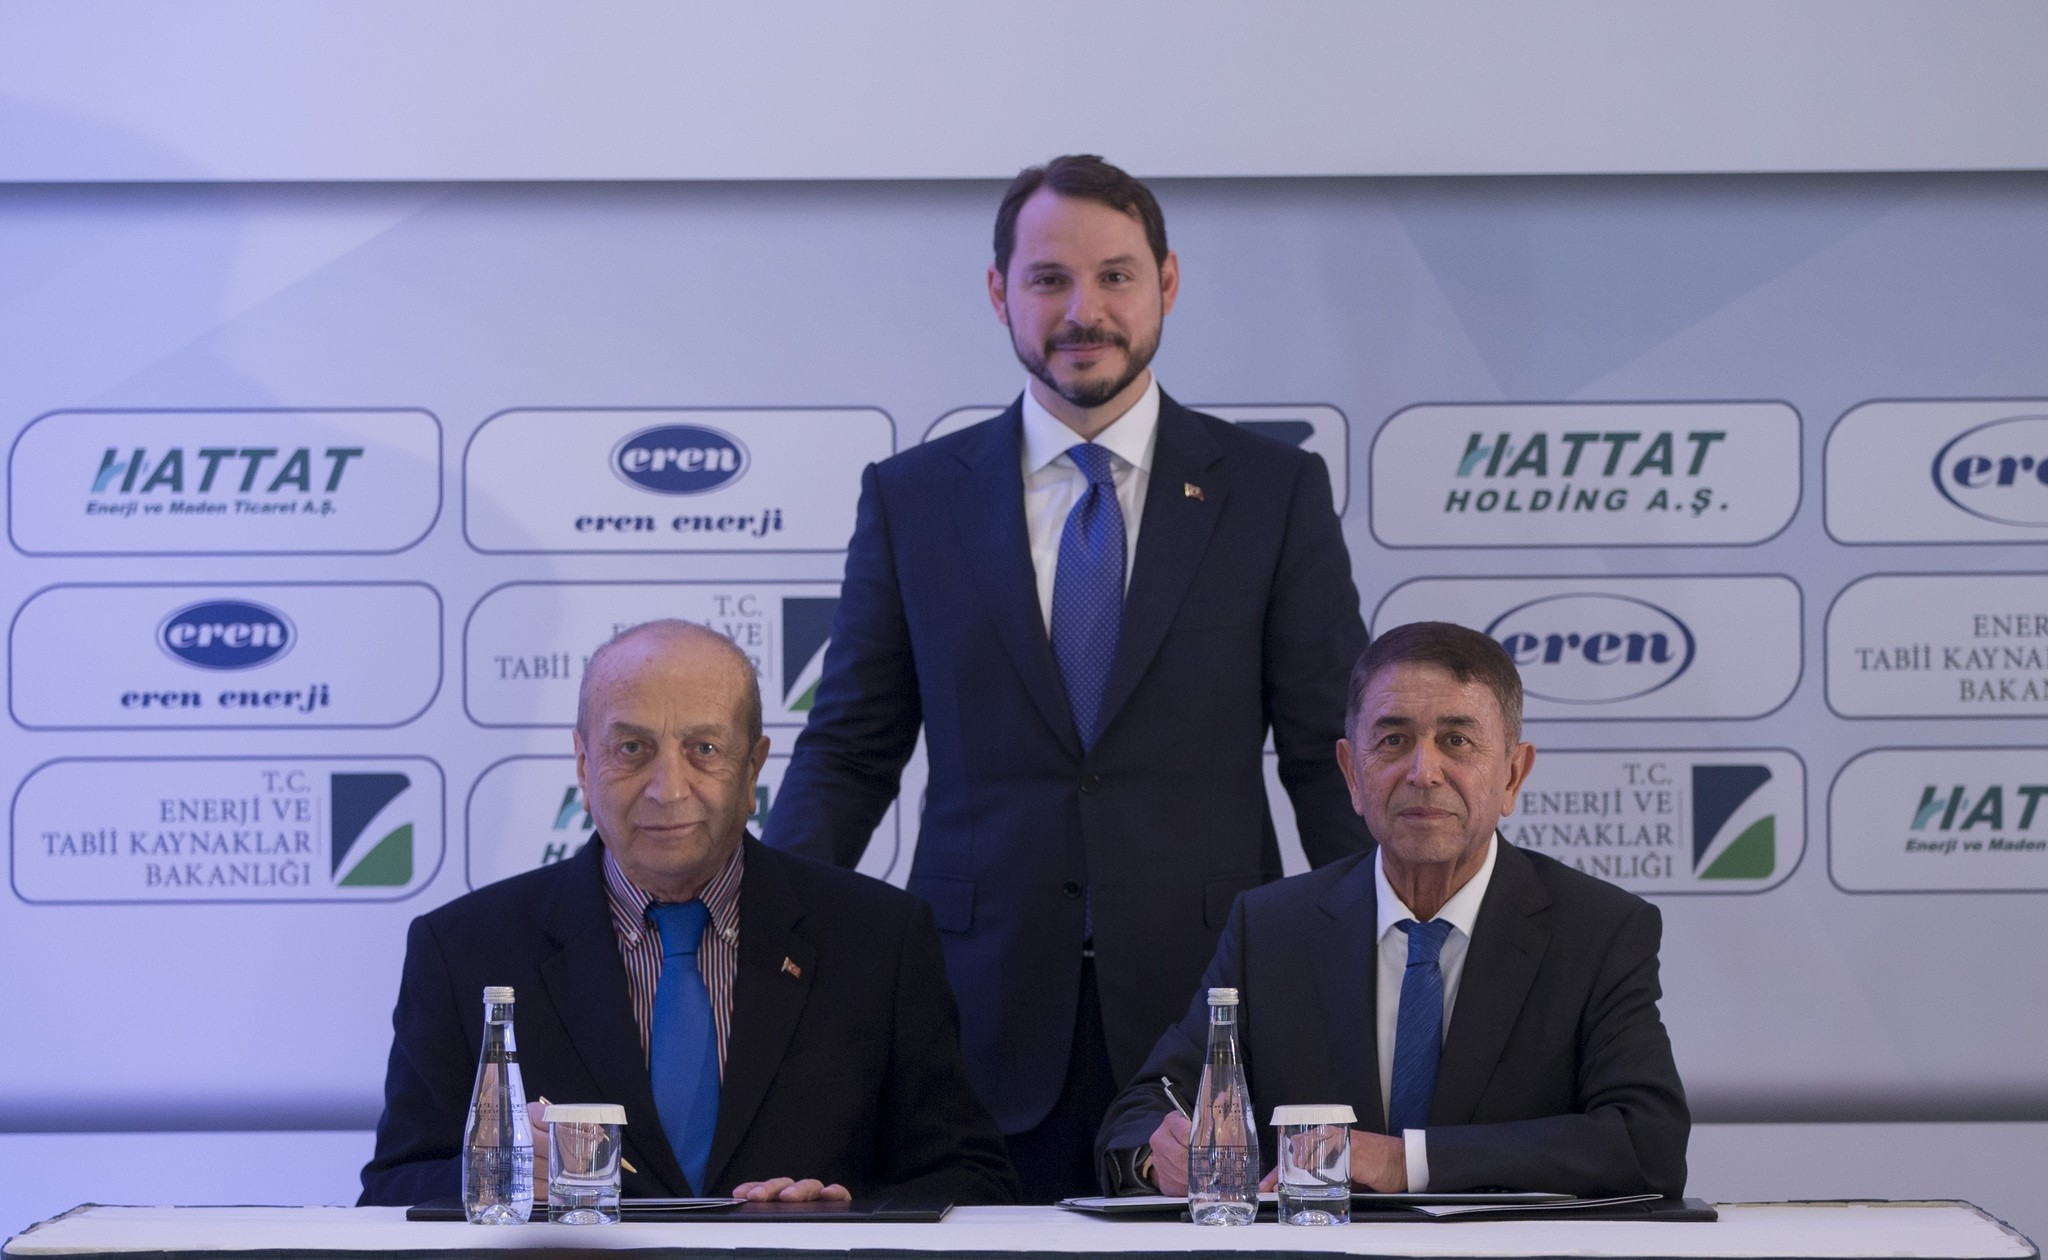 Energy Minister Berat Albayrak (C) at the signing ceremony of the protocol on the Zetes-Hattat Transformation into Domestic Coal. Hattat Holding Chair Mehmet Hattat (L) and Eren Holding Chair Ahmet Eren (R) signed the protocol.